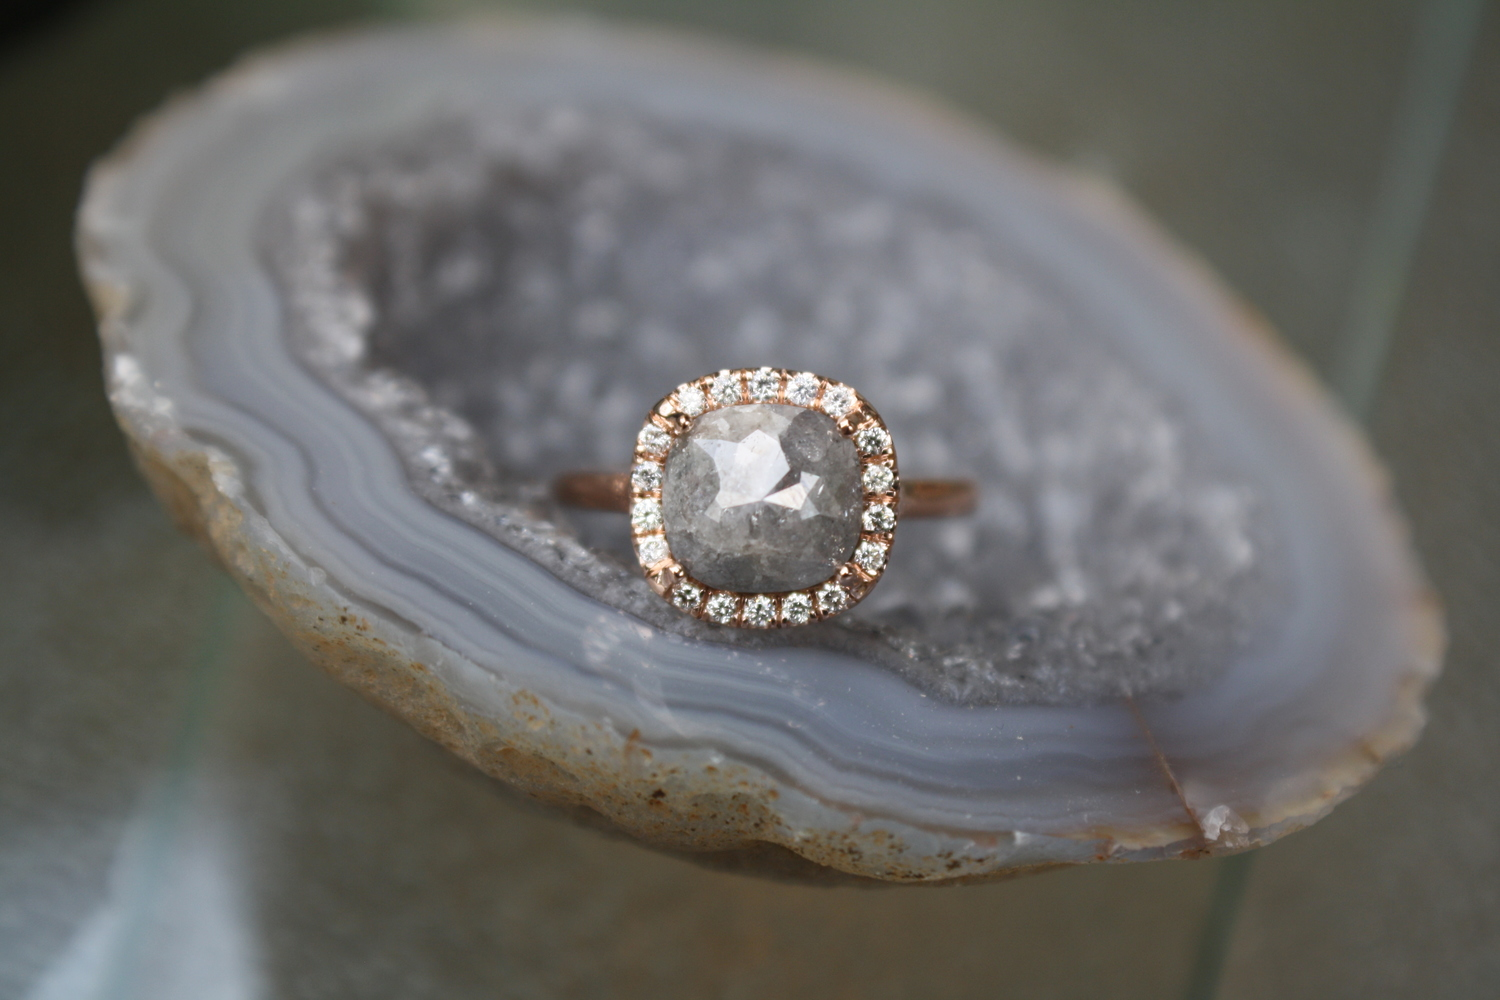 Jpg Aj Smart And Arianna Grey Diamond With Rosegold And Pave Diamond Halo  Engagement Ring15